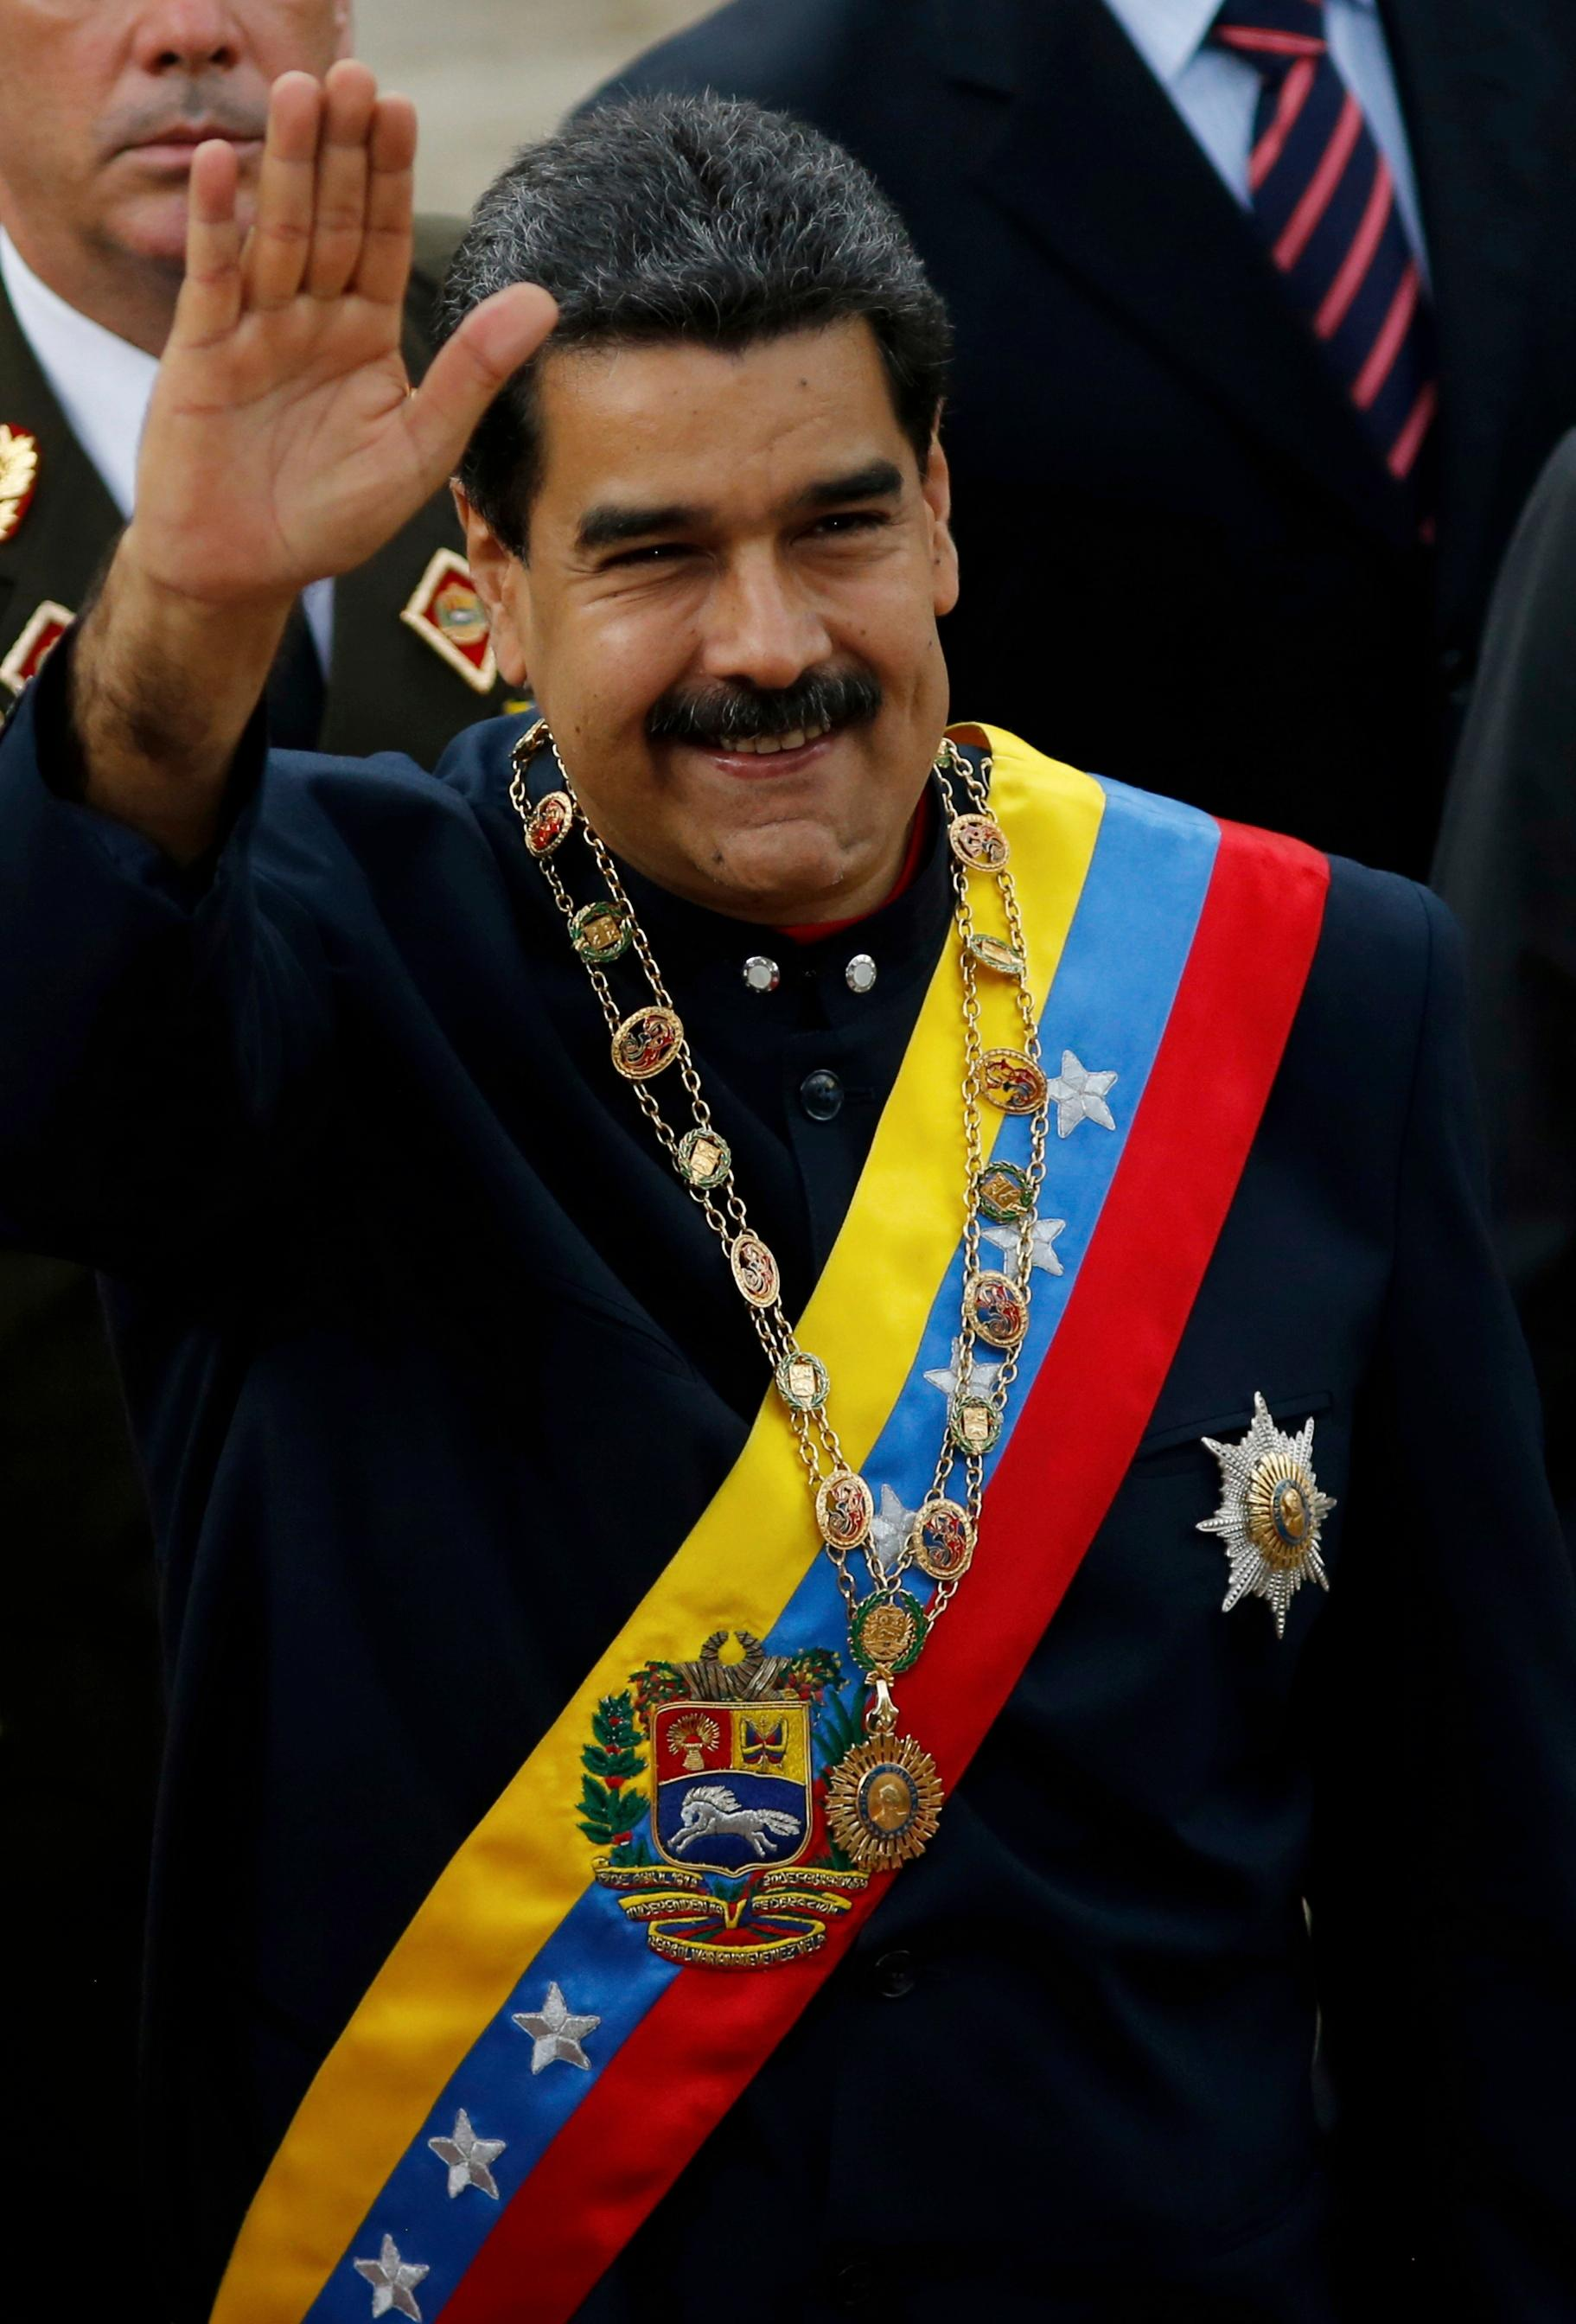 Venezuela's President Nicolas Maduro waves upon arrival to the National Assembly building to attend a session of the Constitutional Assembly in Caracas, Venezuela, Thursday, Aug. 10, 2017. The new constitutional assembly has declared itself as the superior body to all other governmental institutions. (AP Photo/Ariana Cubillos)